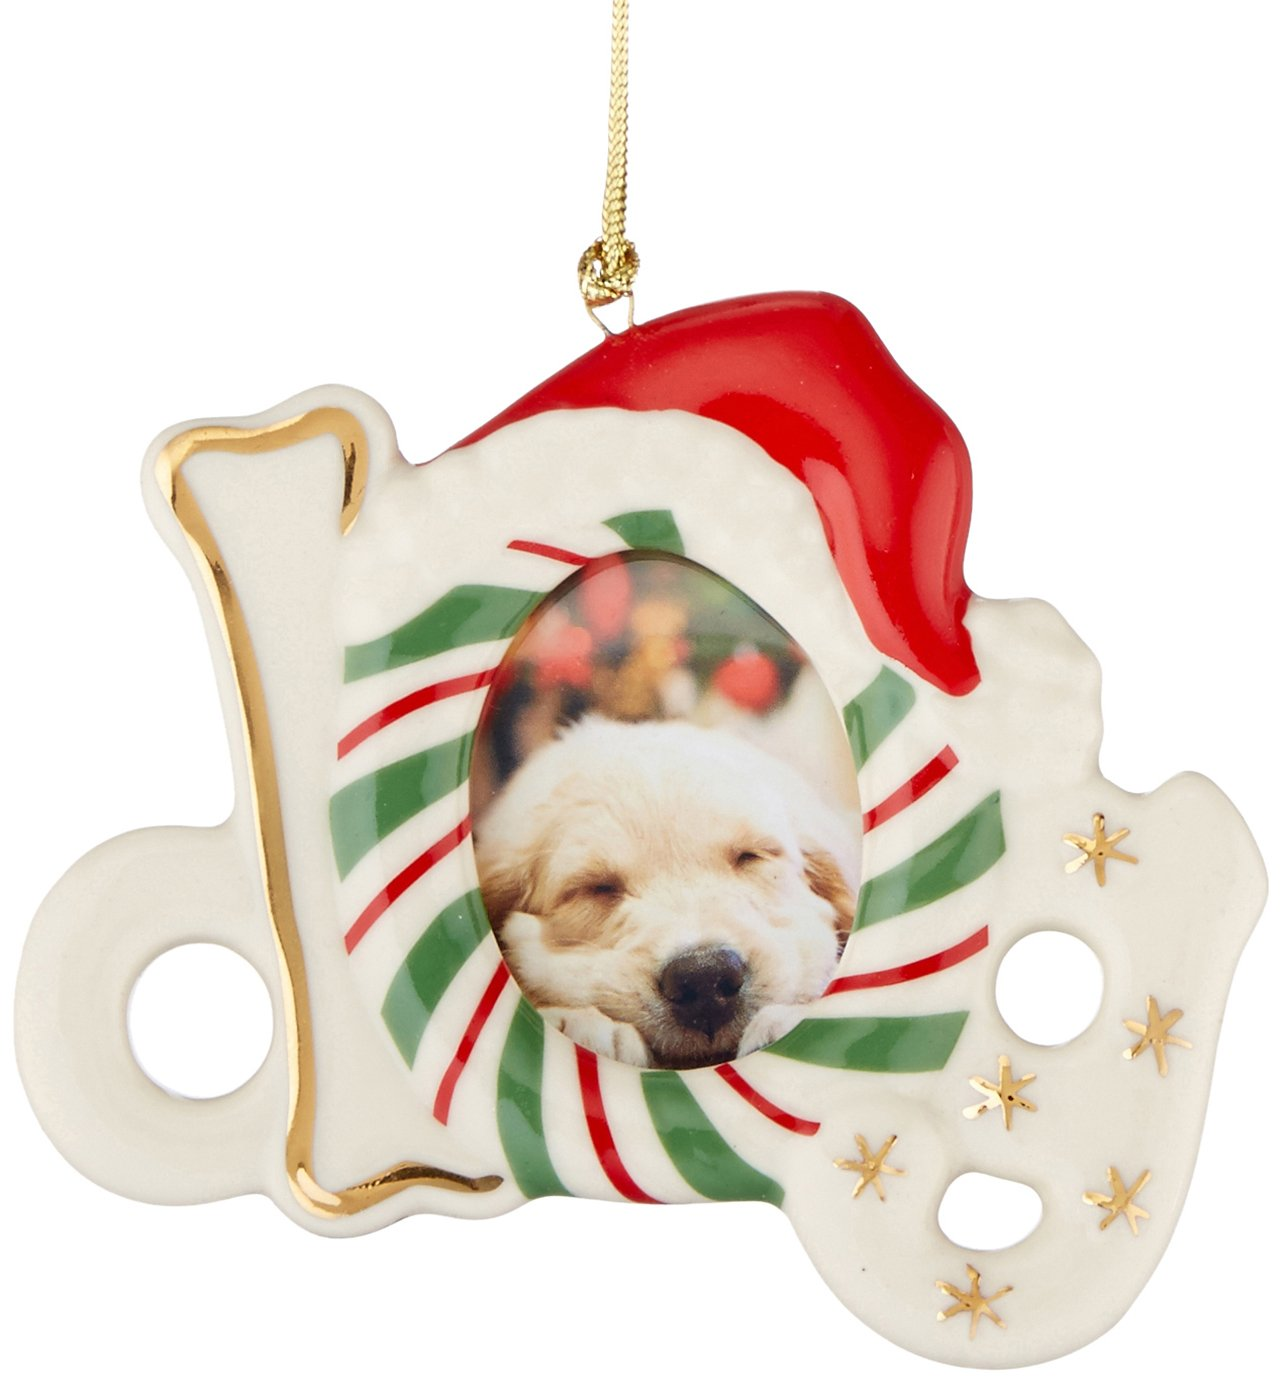 Amazon.com: Lenox Dog Frame Ornament/Magnet: Home & Kitchen